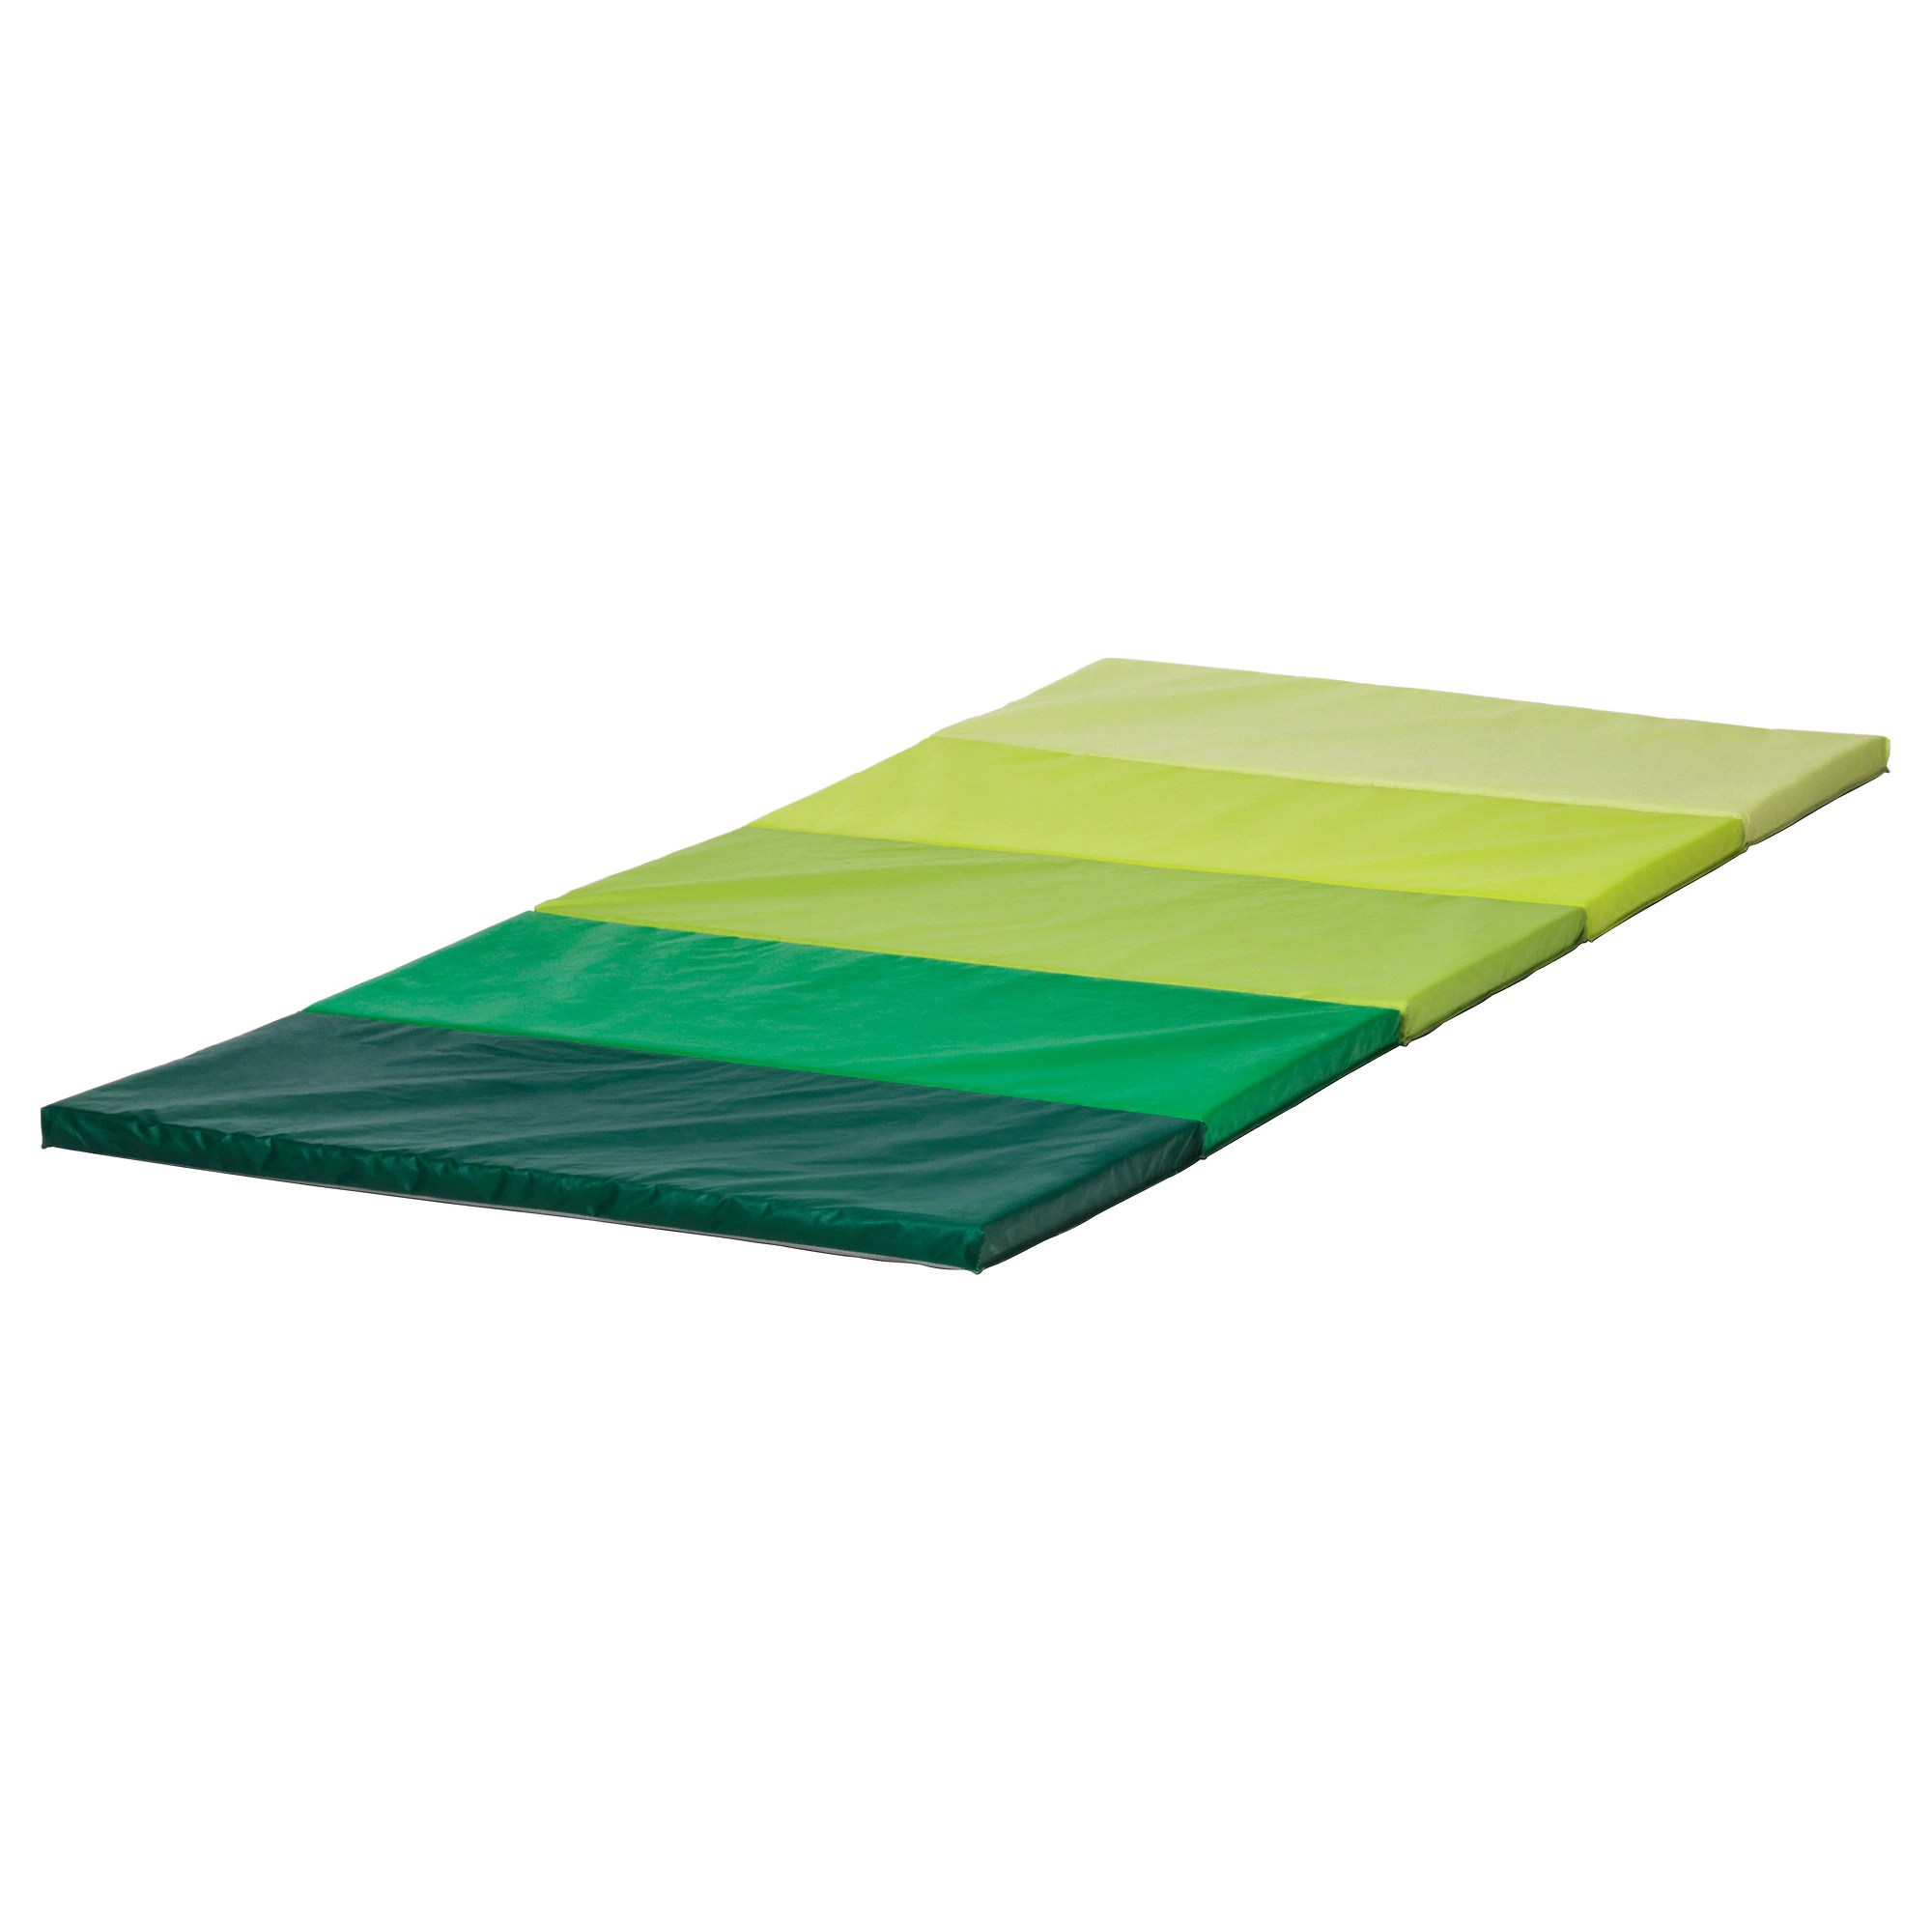 Children's Floor Rugs Plufsig Folding Gym Mat Green